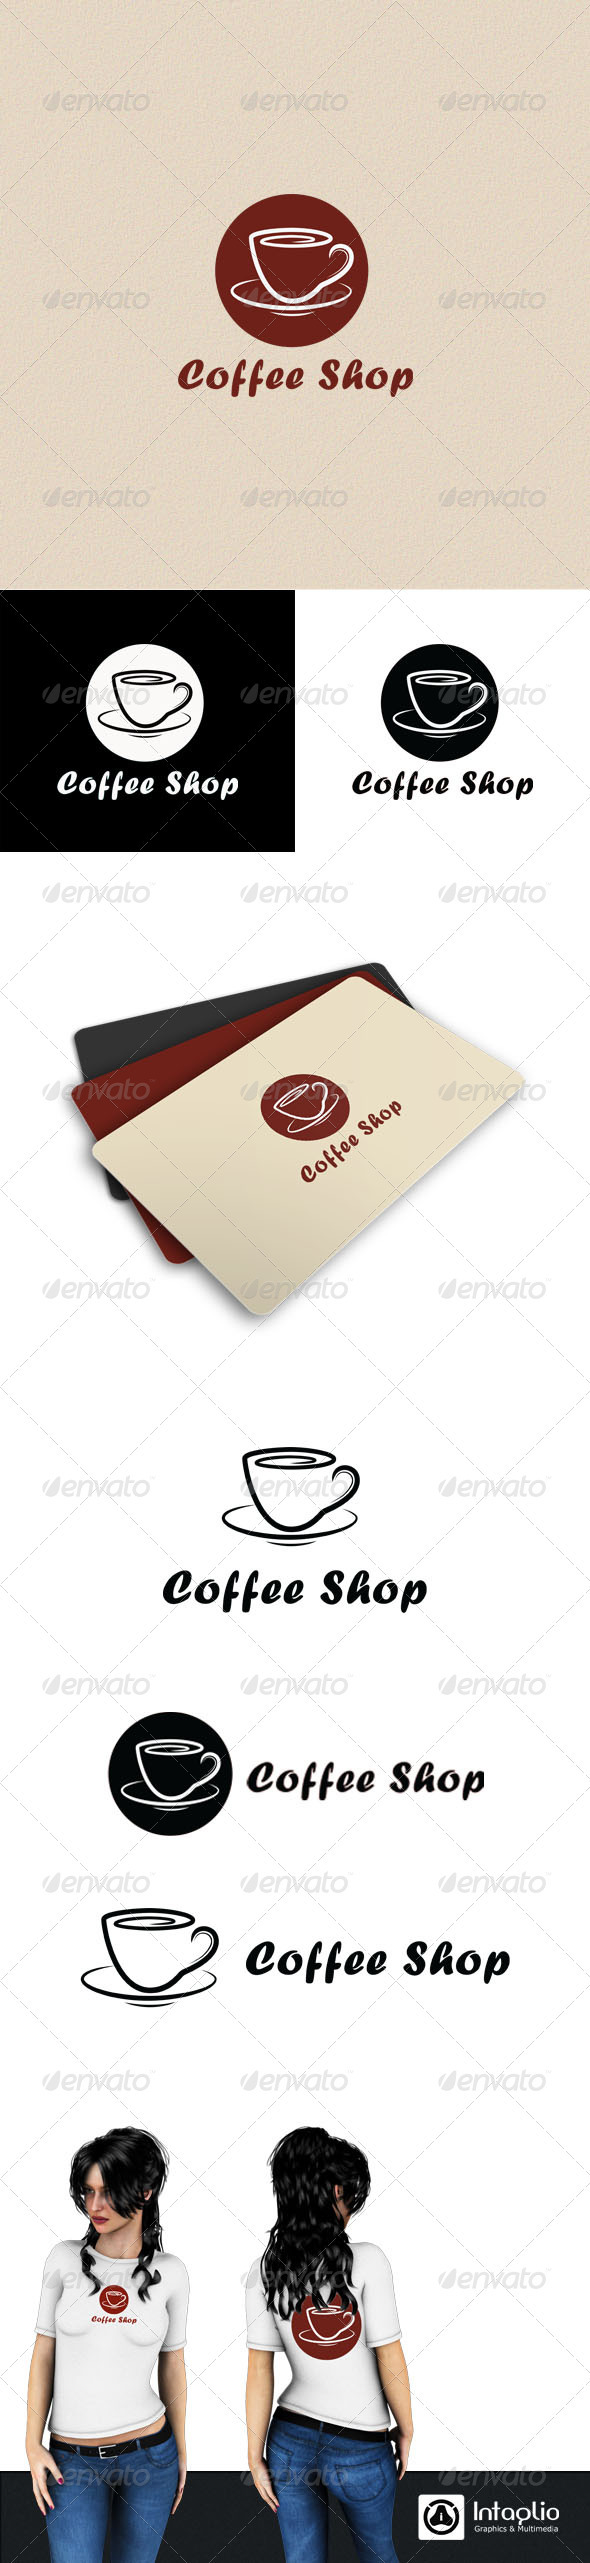 Graphic River Coffee Shop Logo Logo Templates -  Objects 714841